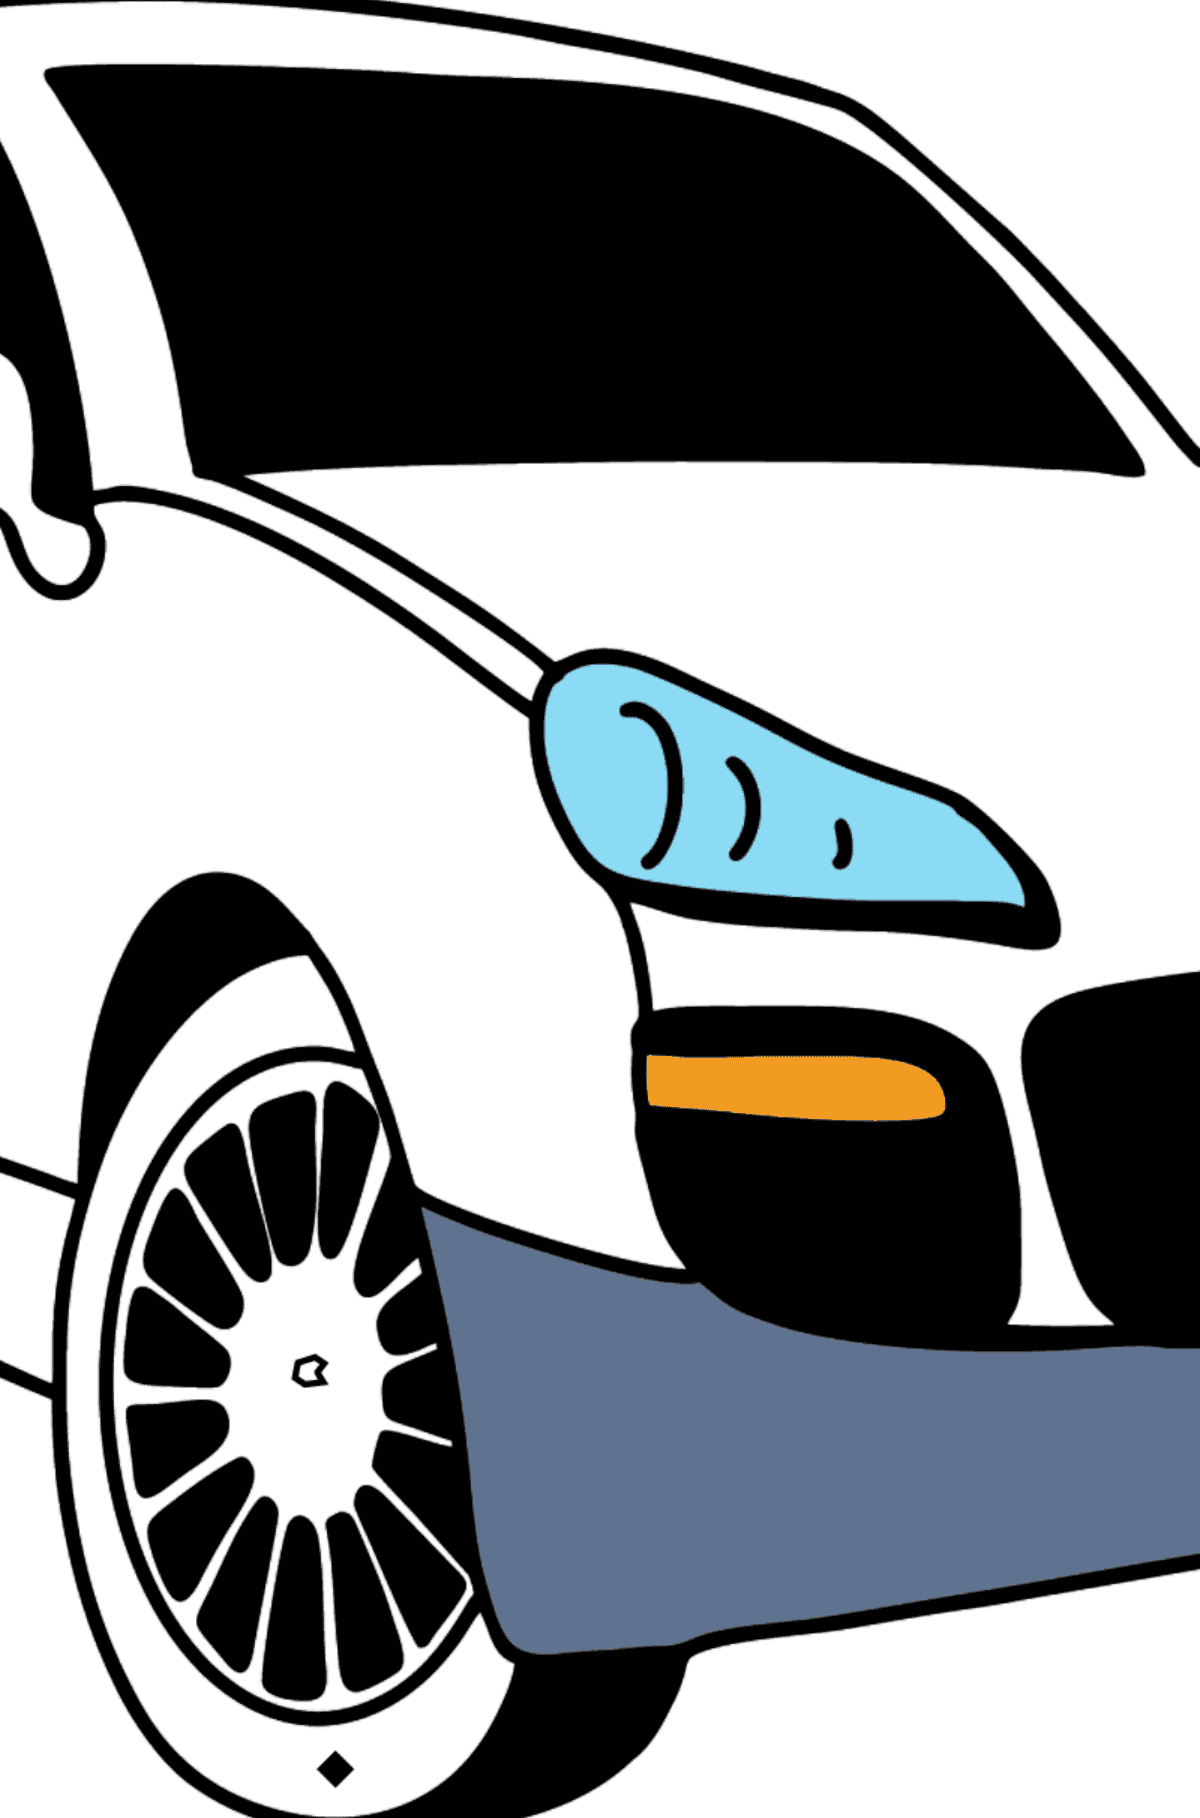 Porsche Cayenne Crossover coloring page - Coloring by Symbols and Geometric Shapes for Kids